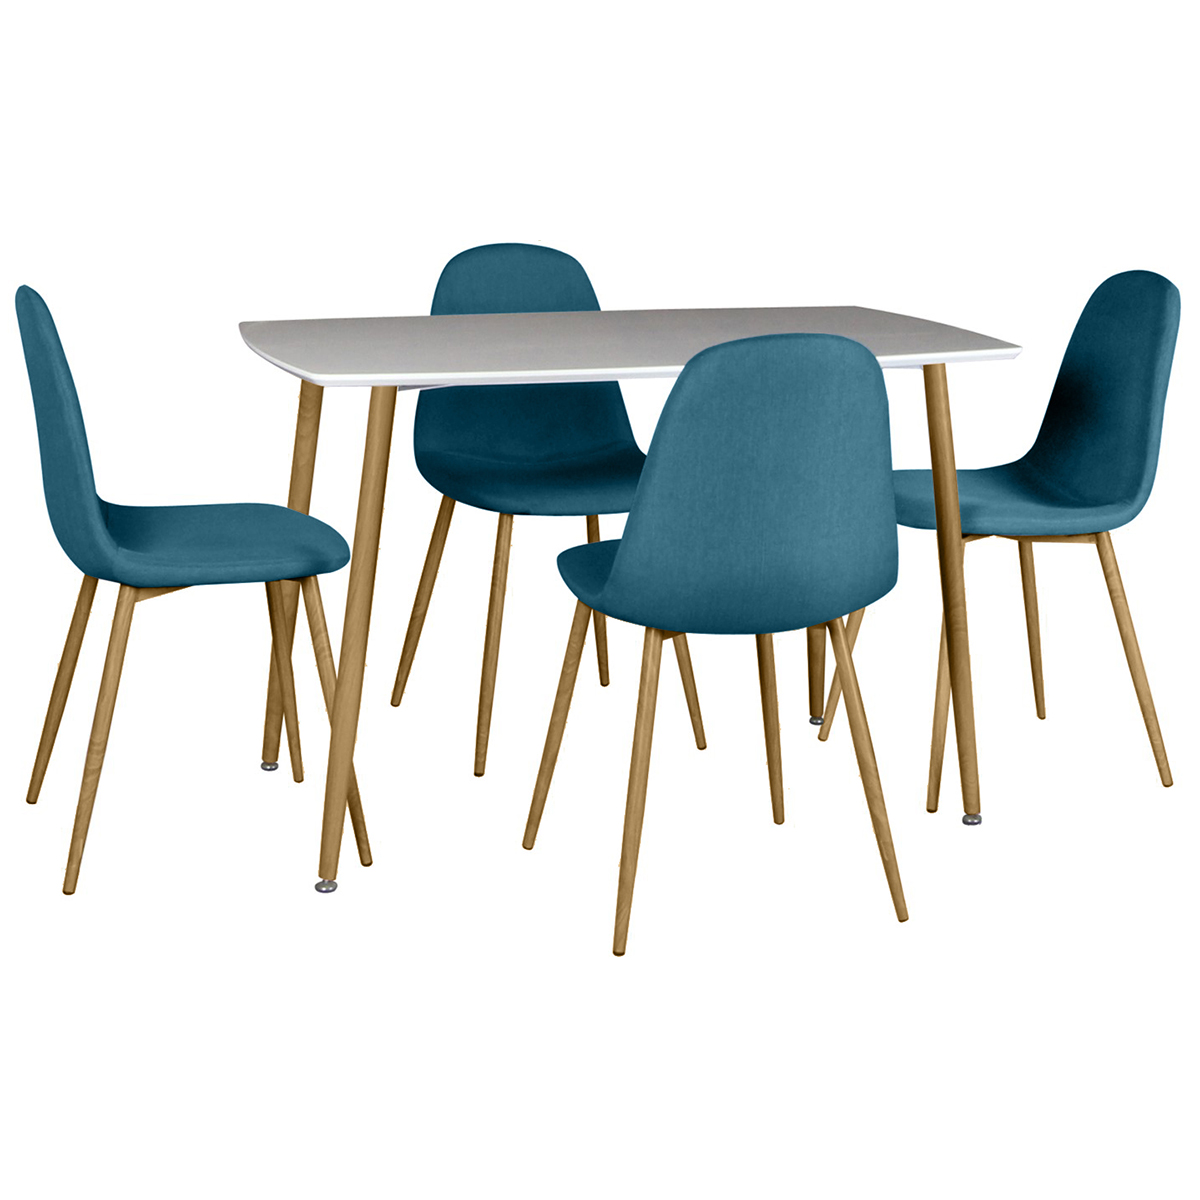 Chaises De Table Winter Ensemble Table 4 Chaises Bleues Altobuy Meuble Literie